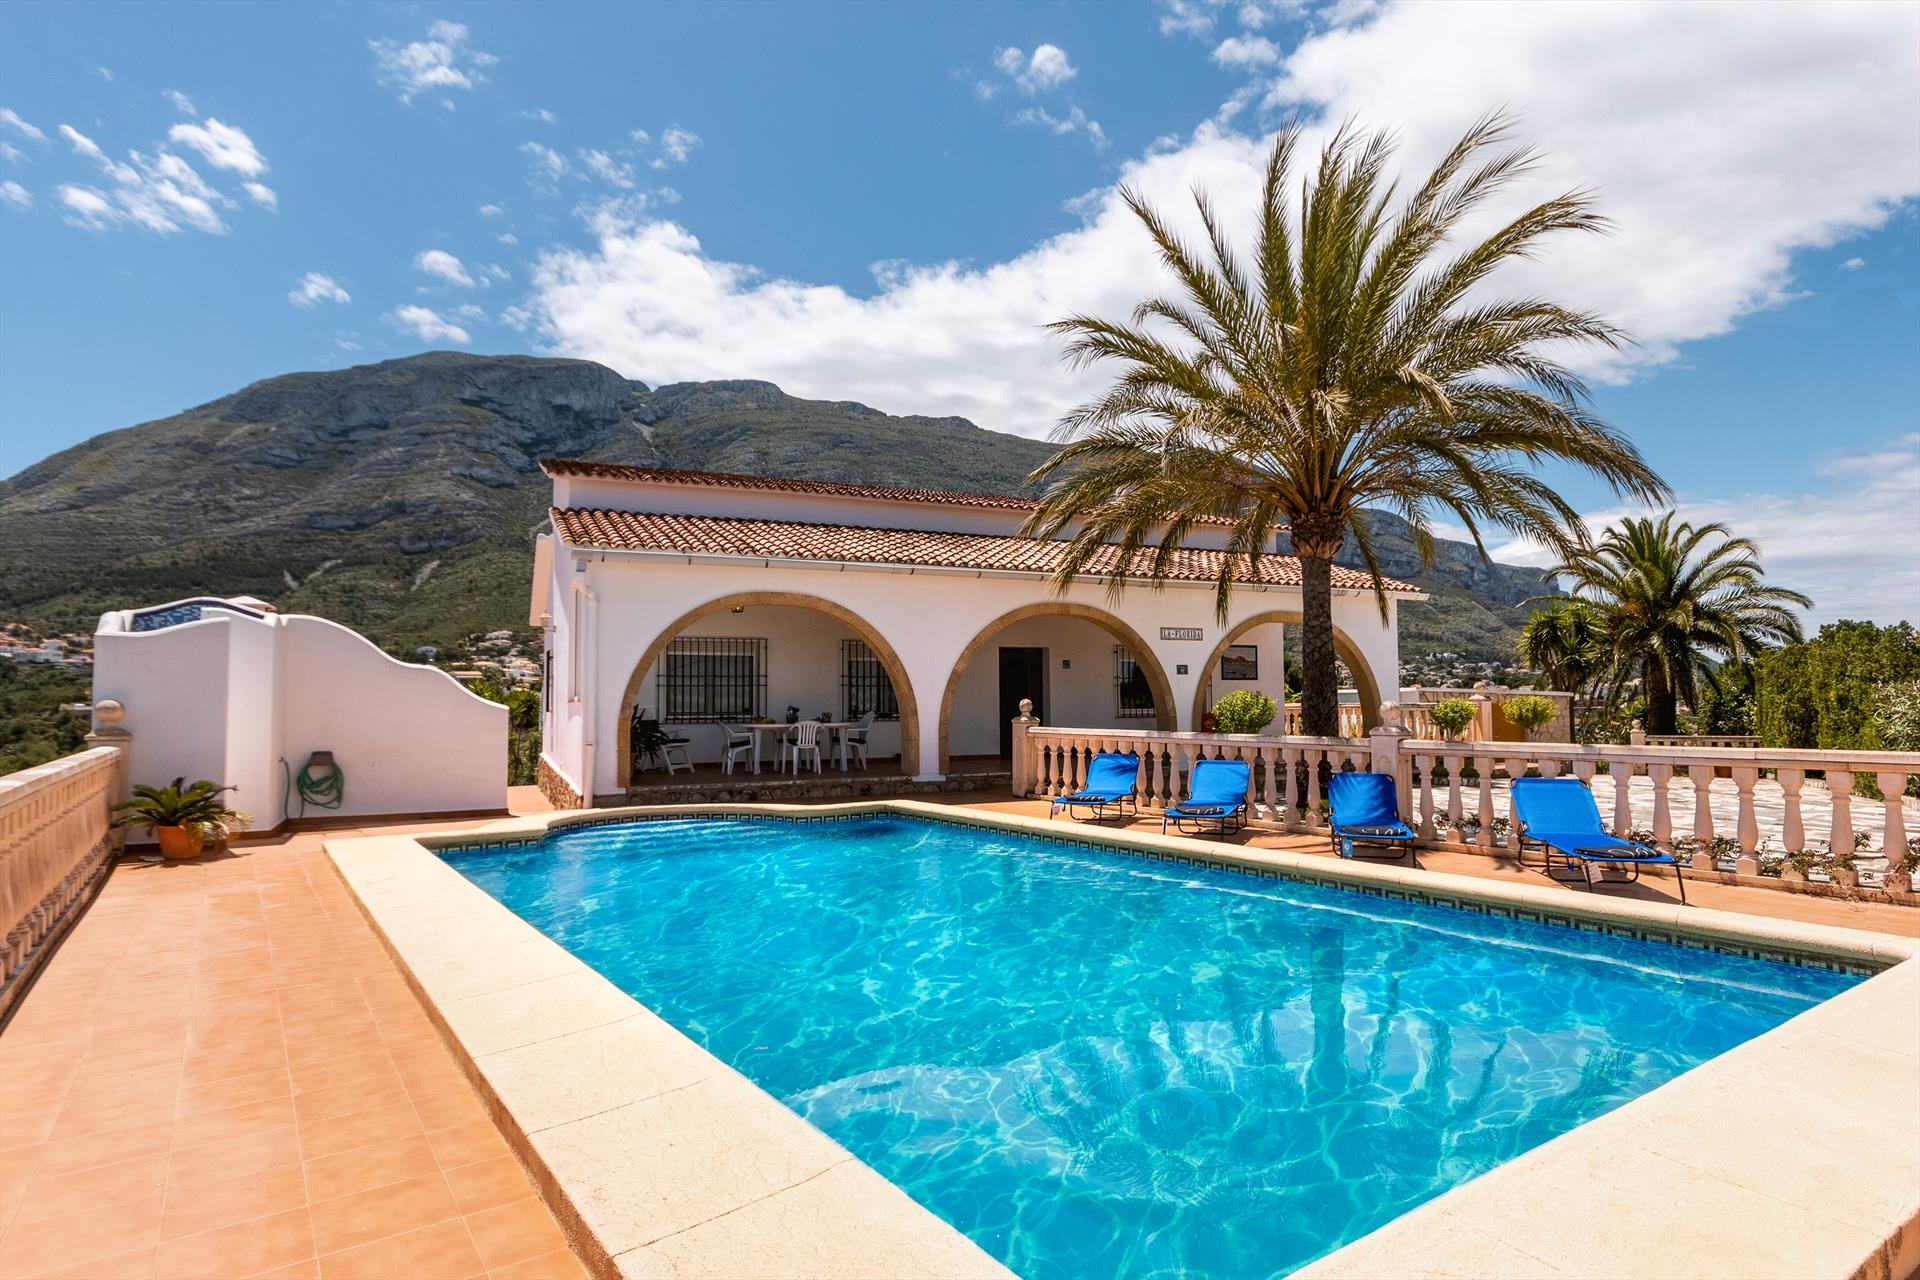 La Florida,Wonderful and romantic villa in Denia, on the Costa Blanca, Spain  with private pool for 8 persons.....